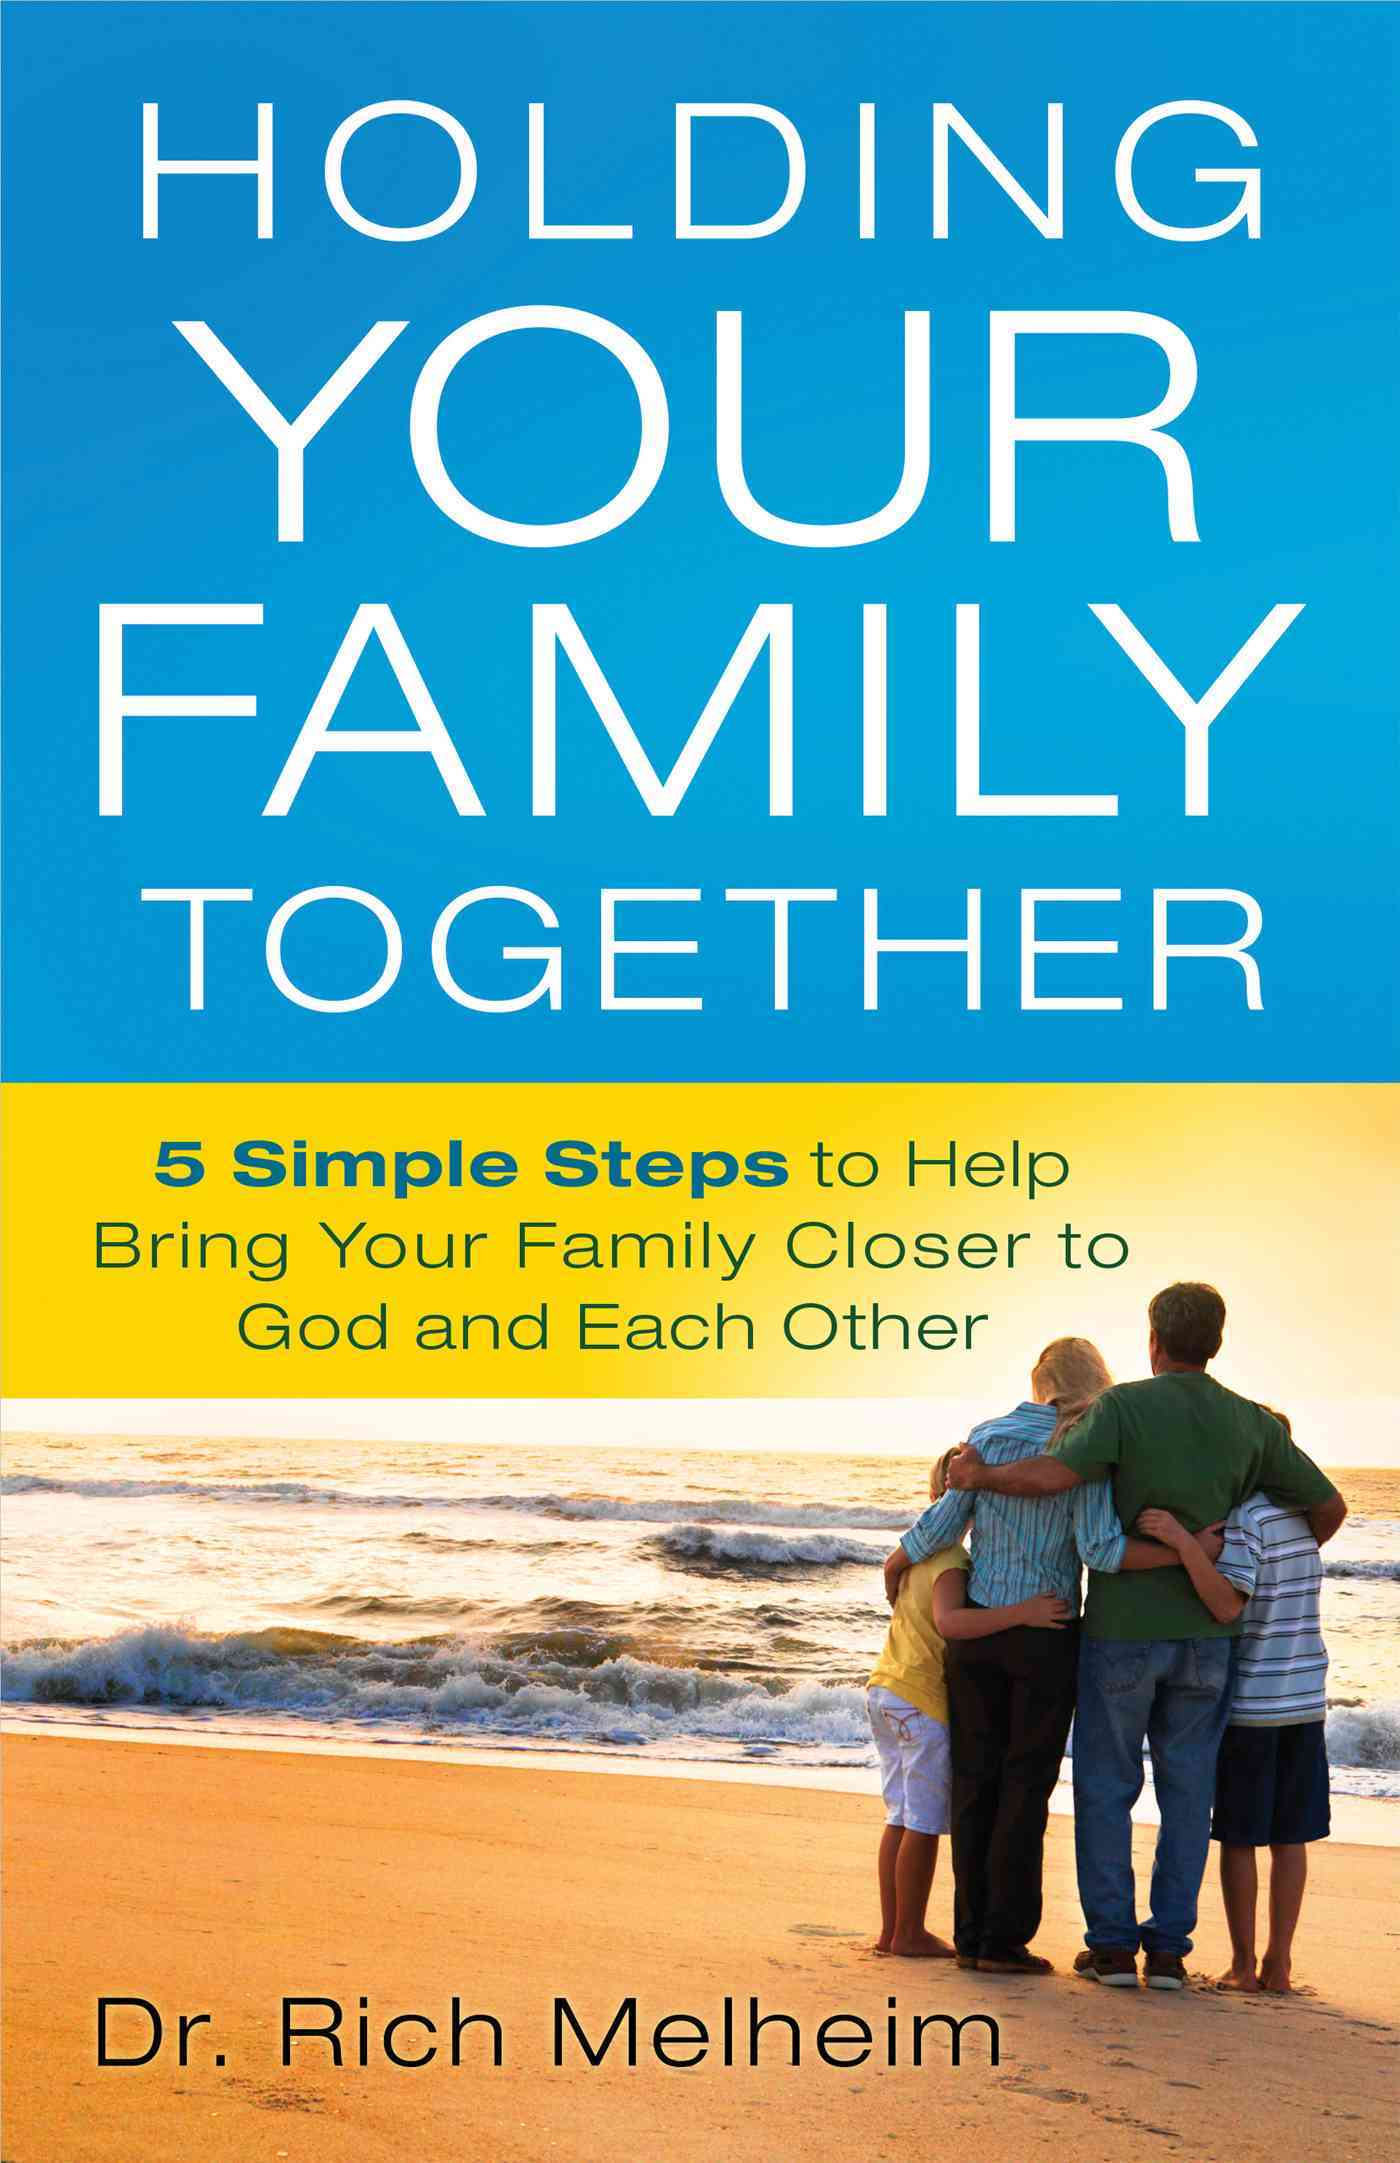 Holding Your Family Together: 5 Simple Steps to Help Bring Your Family Closer to God and Each Other (Paperback)